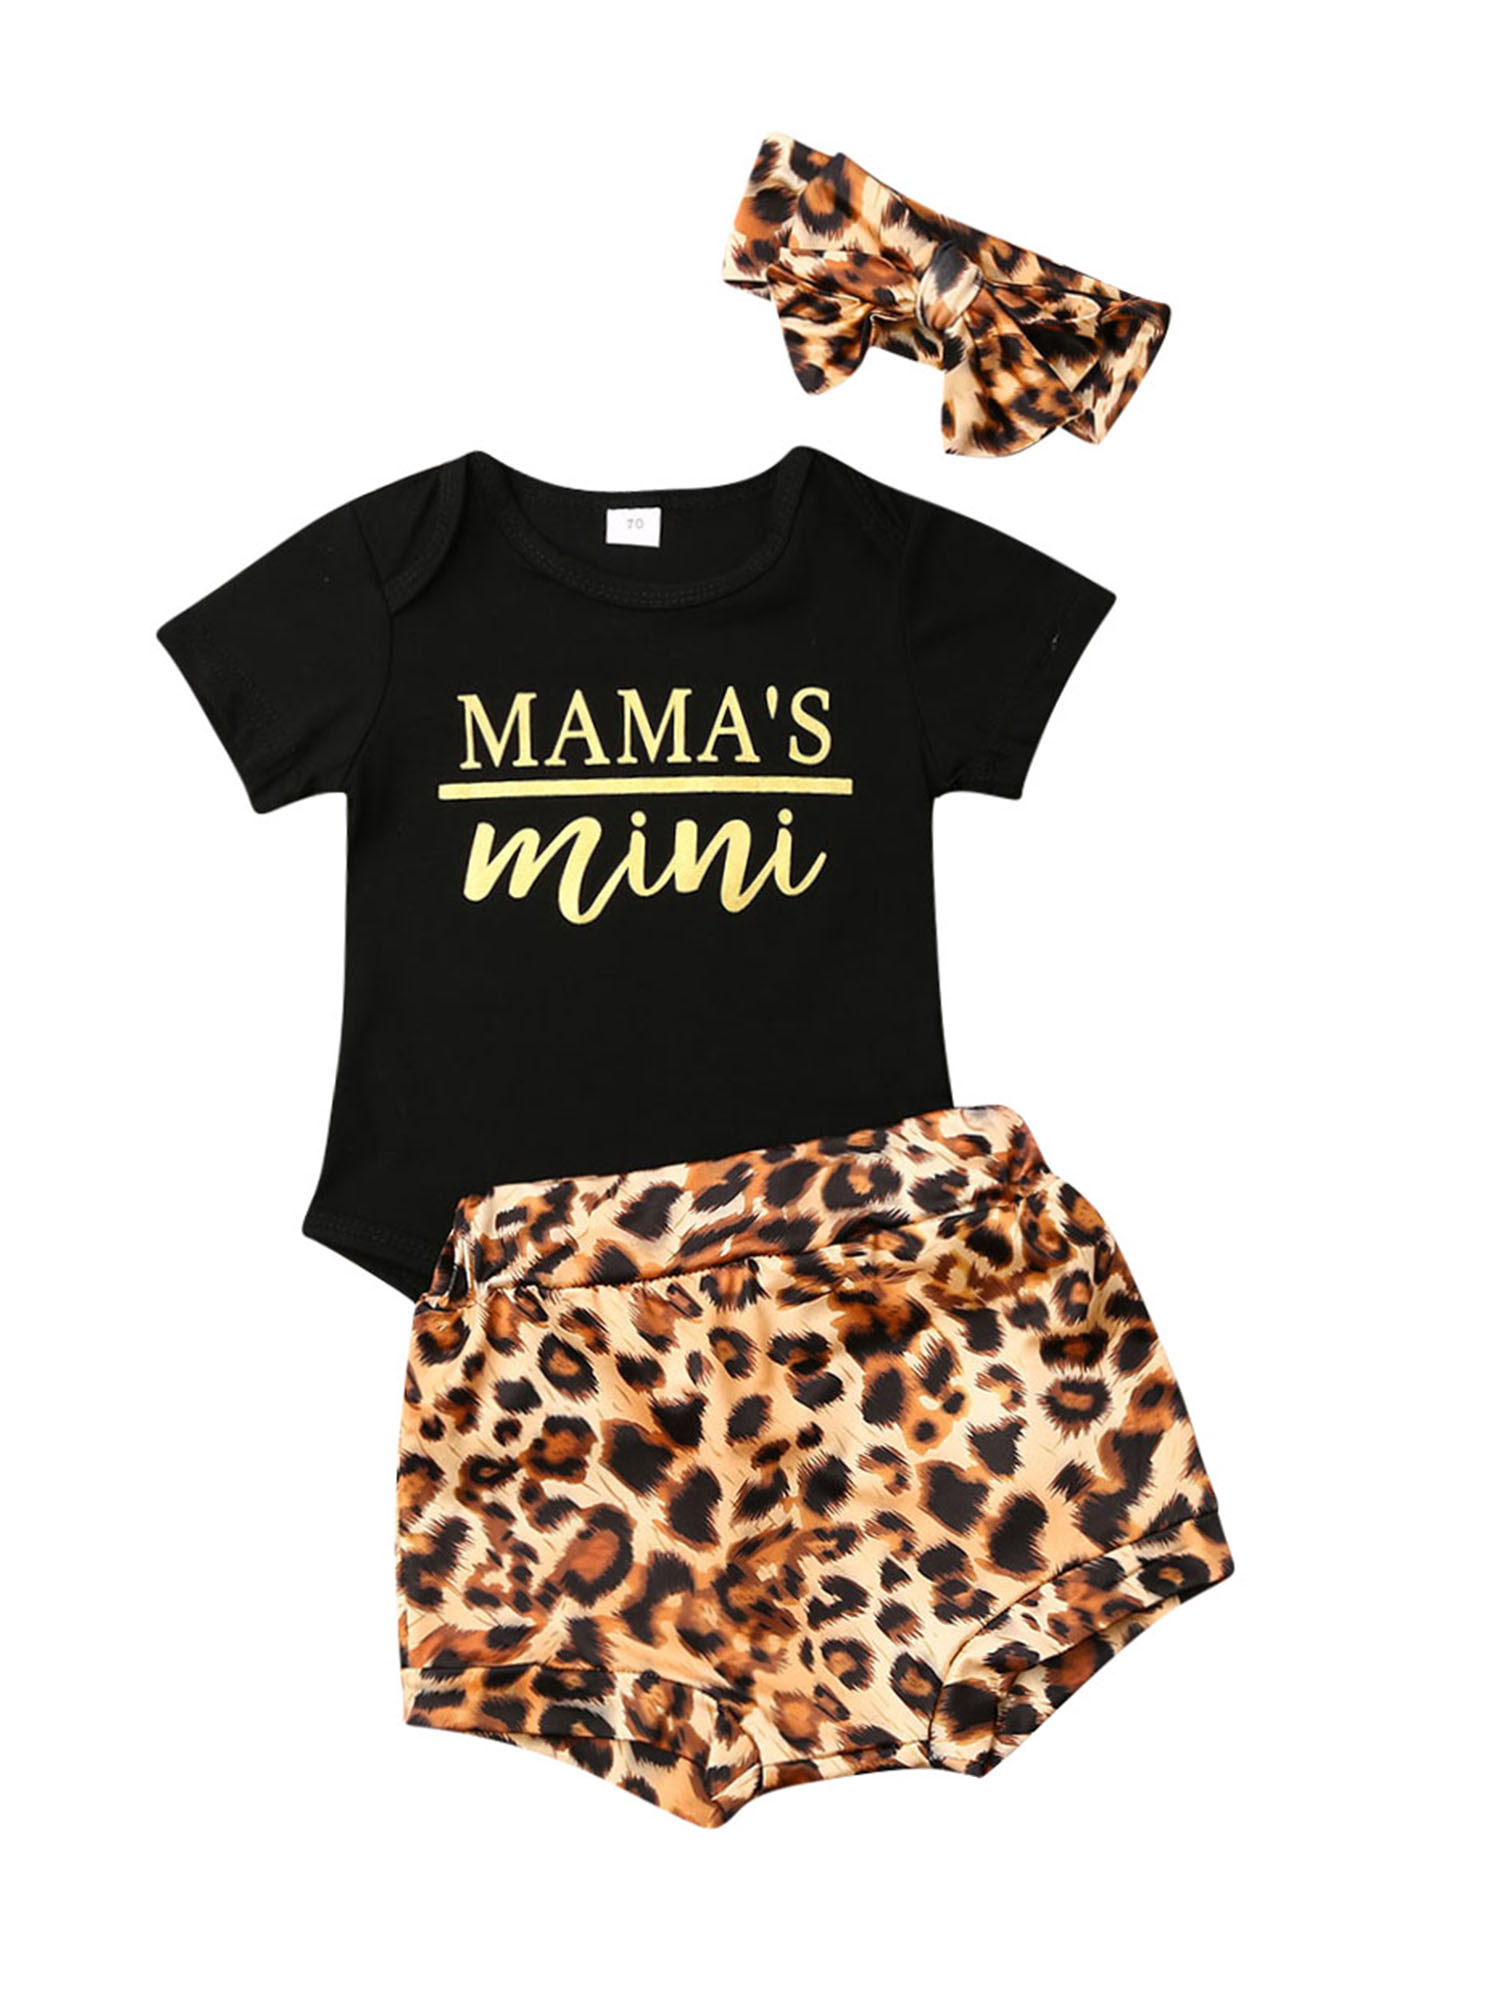 Newborn Infant Baby Girls Black Short//Long Sleeve Romper Top Leopard Print Ruffled Shorts Pants Headband 3Pcs Outfit